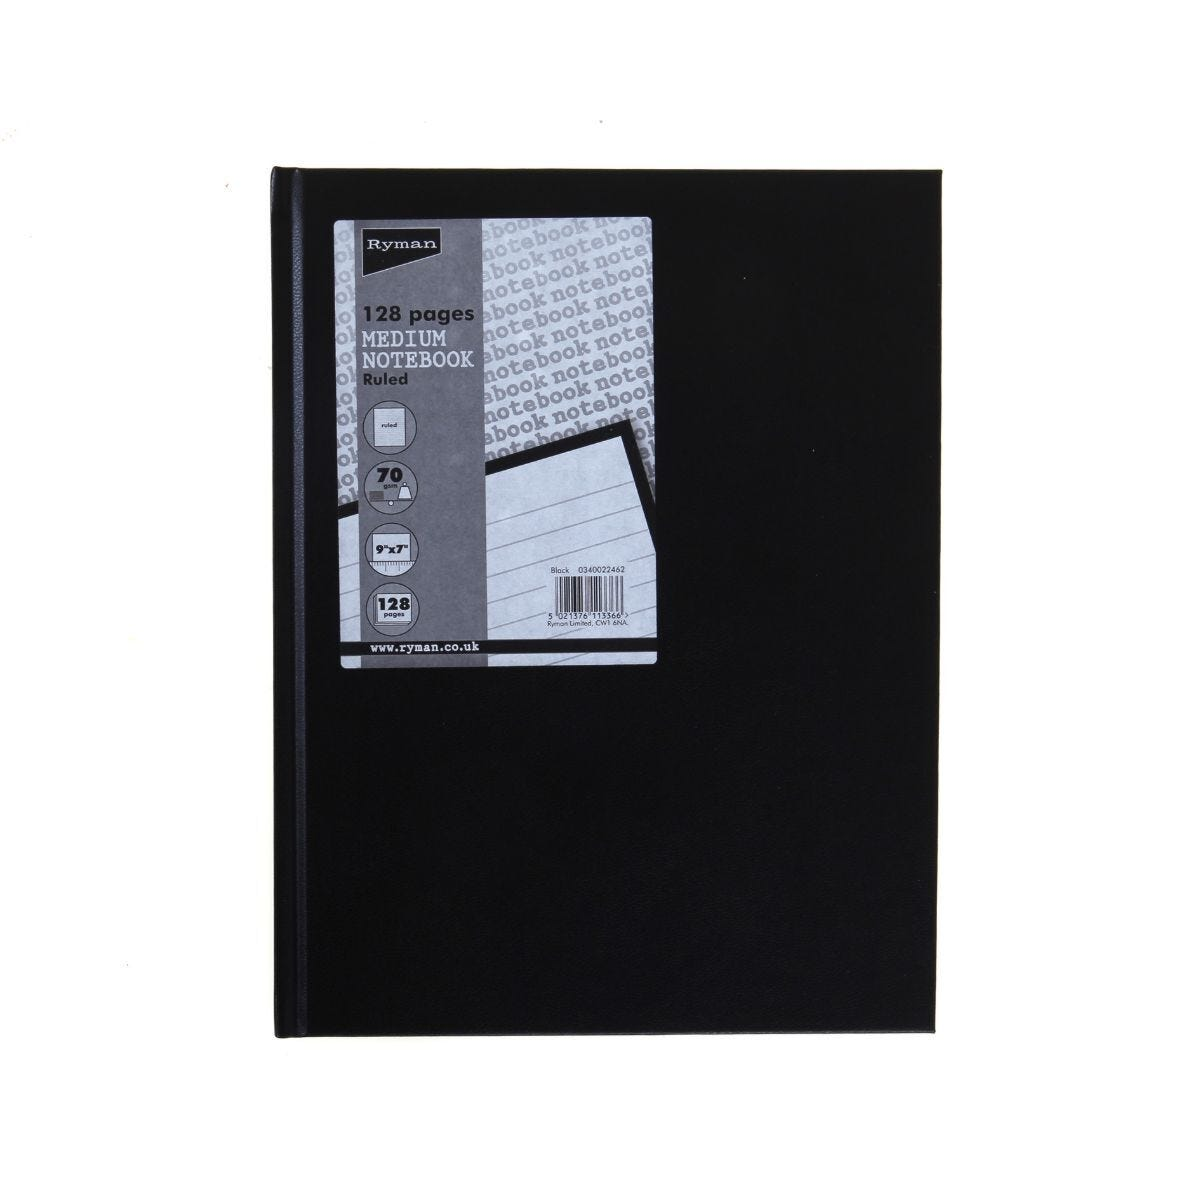 Ryman Case Bound Memo Book Ruled 9x7 128 Pages 70gsm